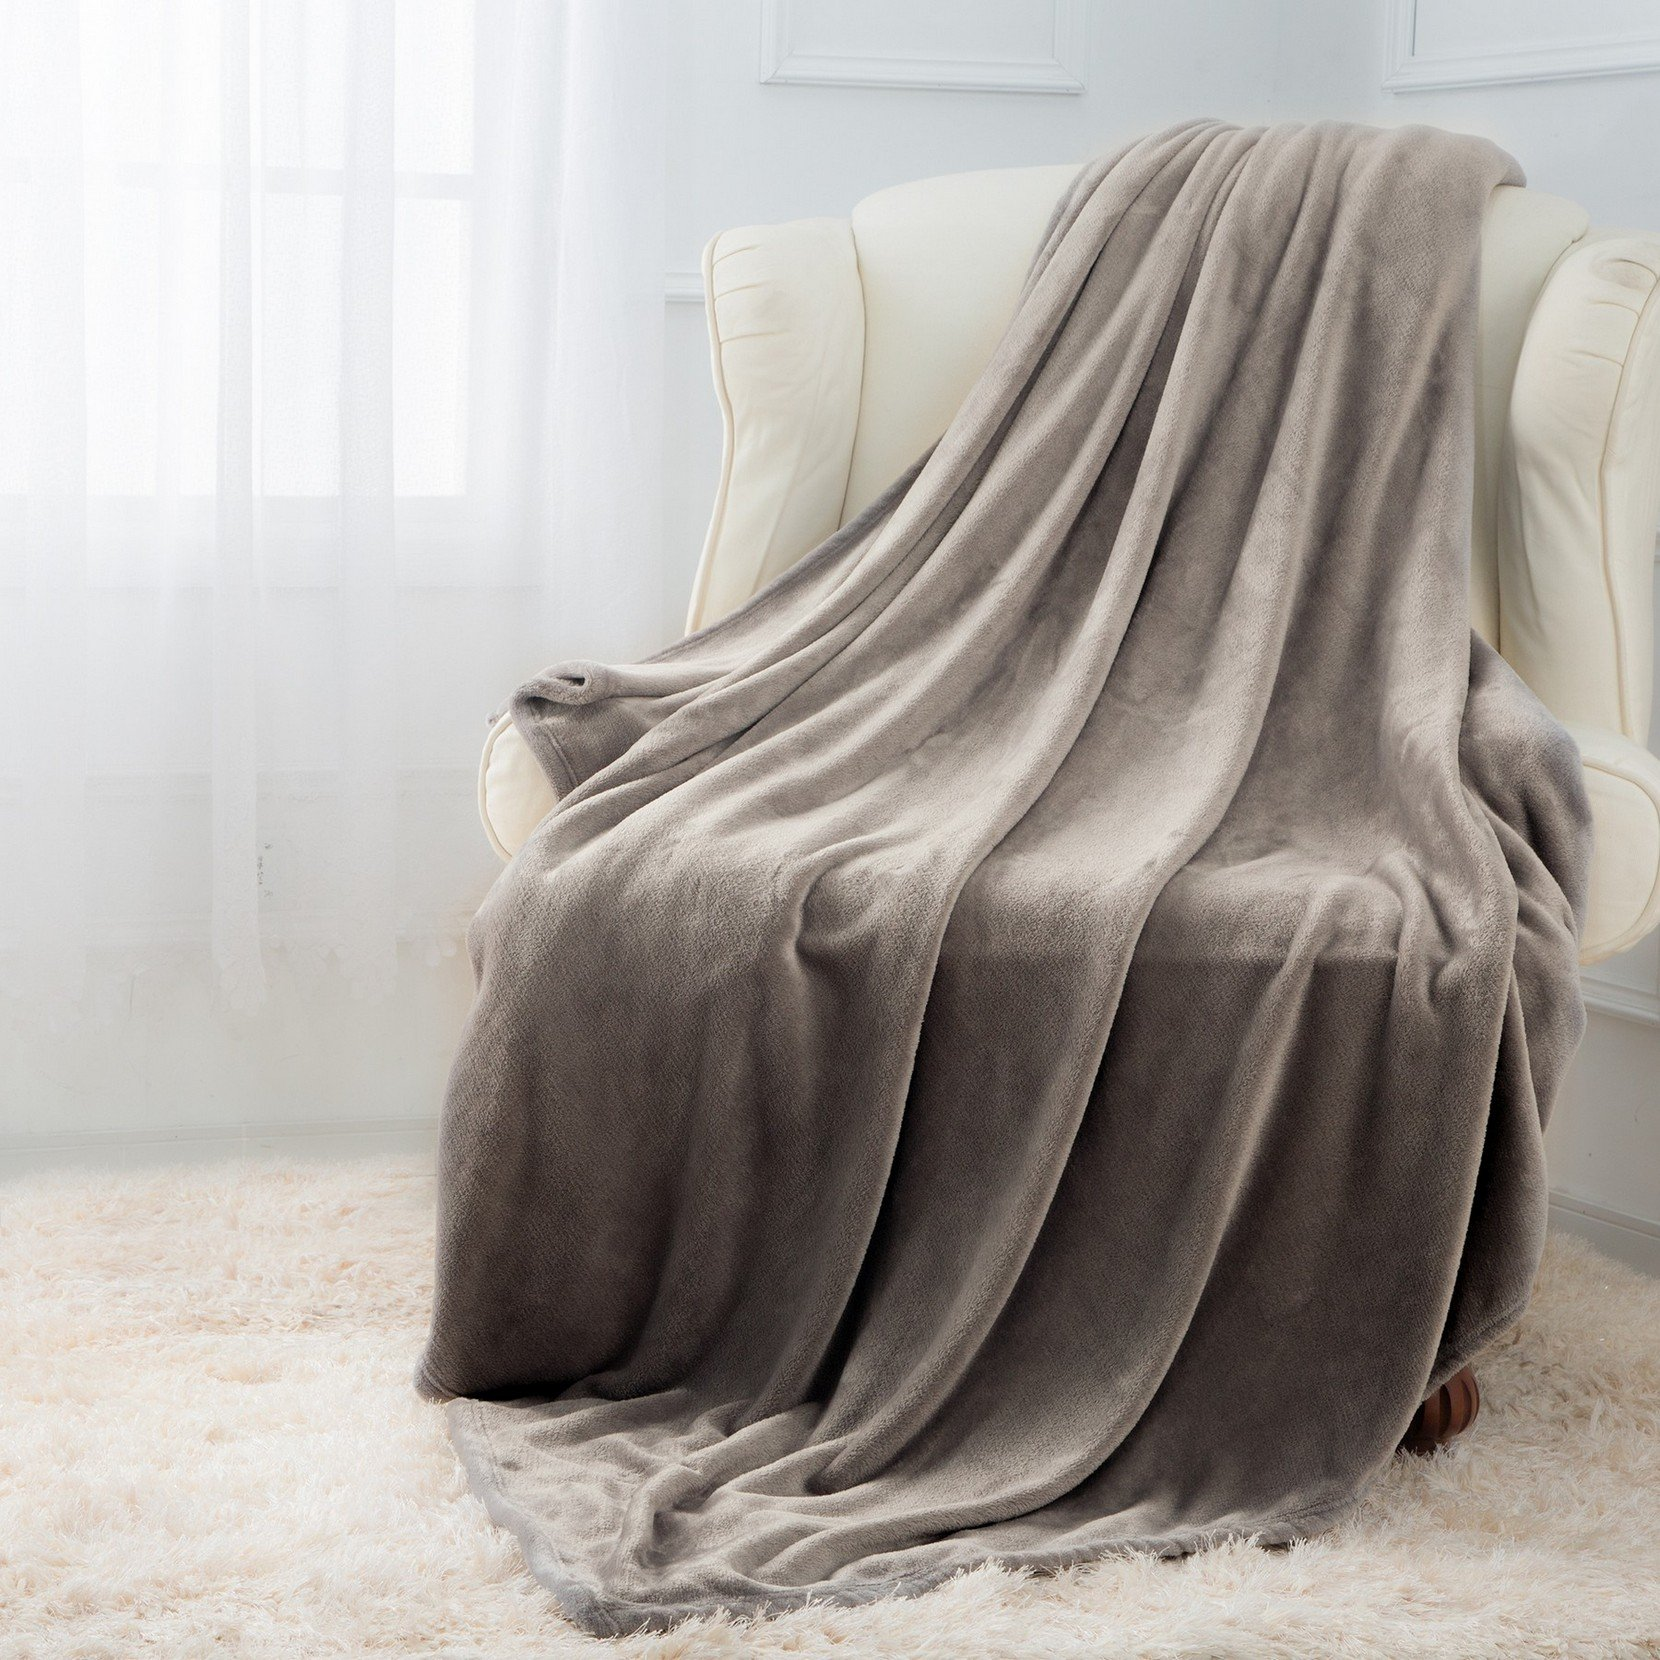 Moonen Flannel Blanket Luxurious Queen Size Lightweight Plush Microfiber Fleece Comfy All Season Super Soft Cozy Blanket for Bed Couch and Gift Blankets (Grey, 90x90 Inches)